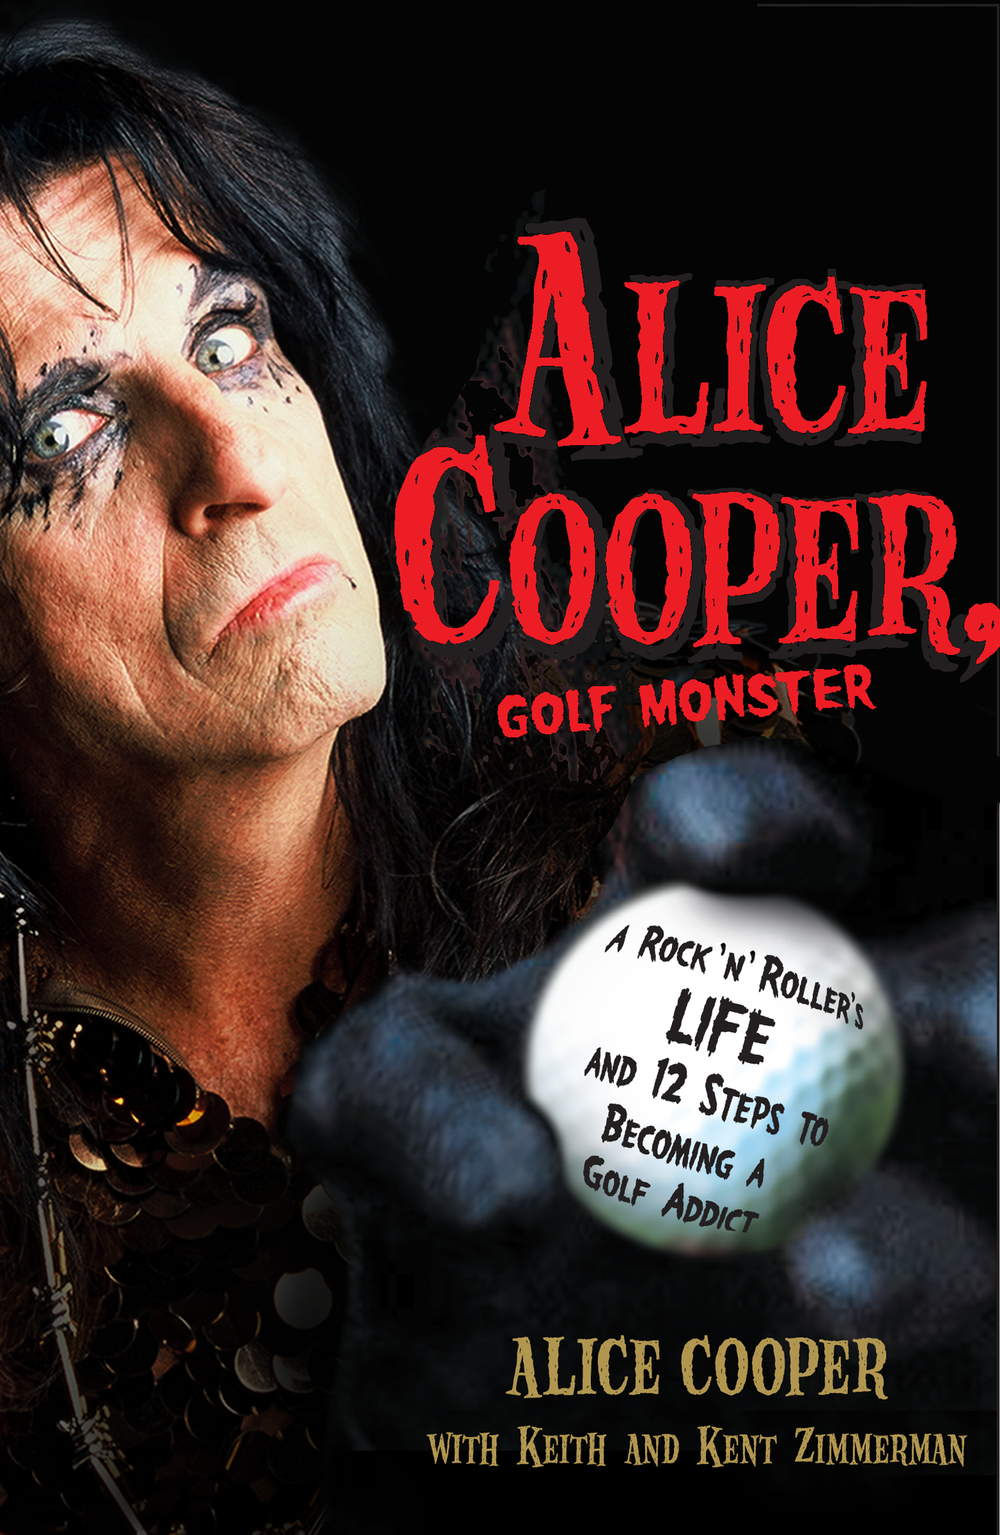 ALICE-COOPER-GOLF-MONSTER-tpb-ss6.jpg